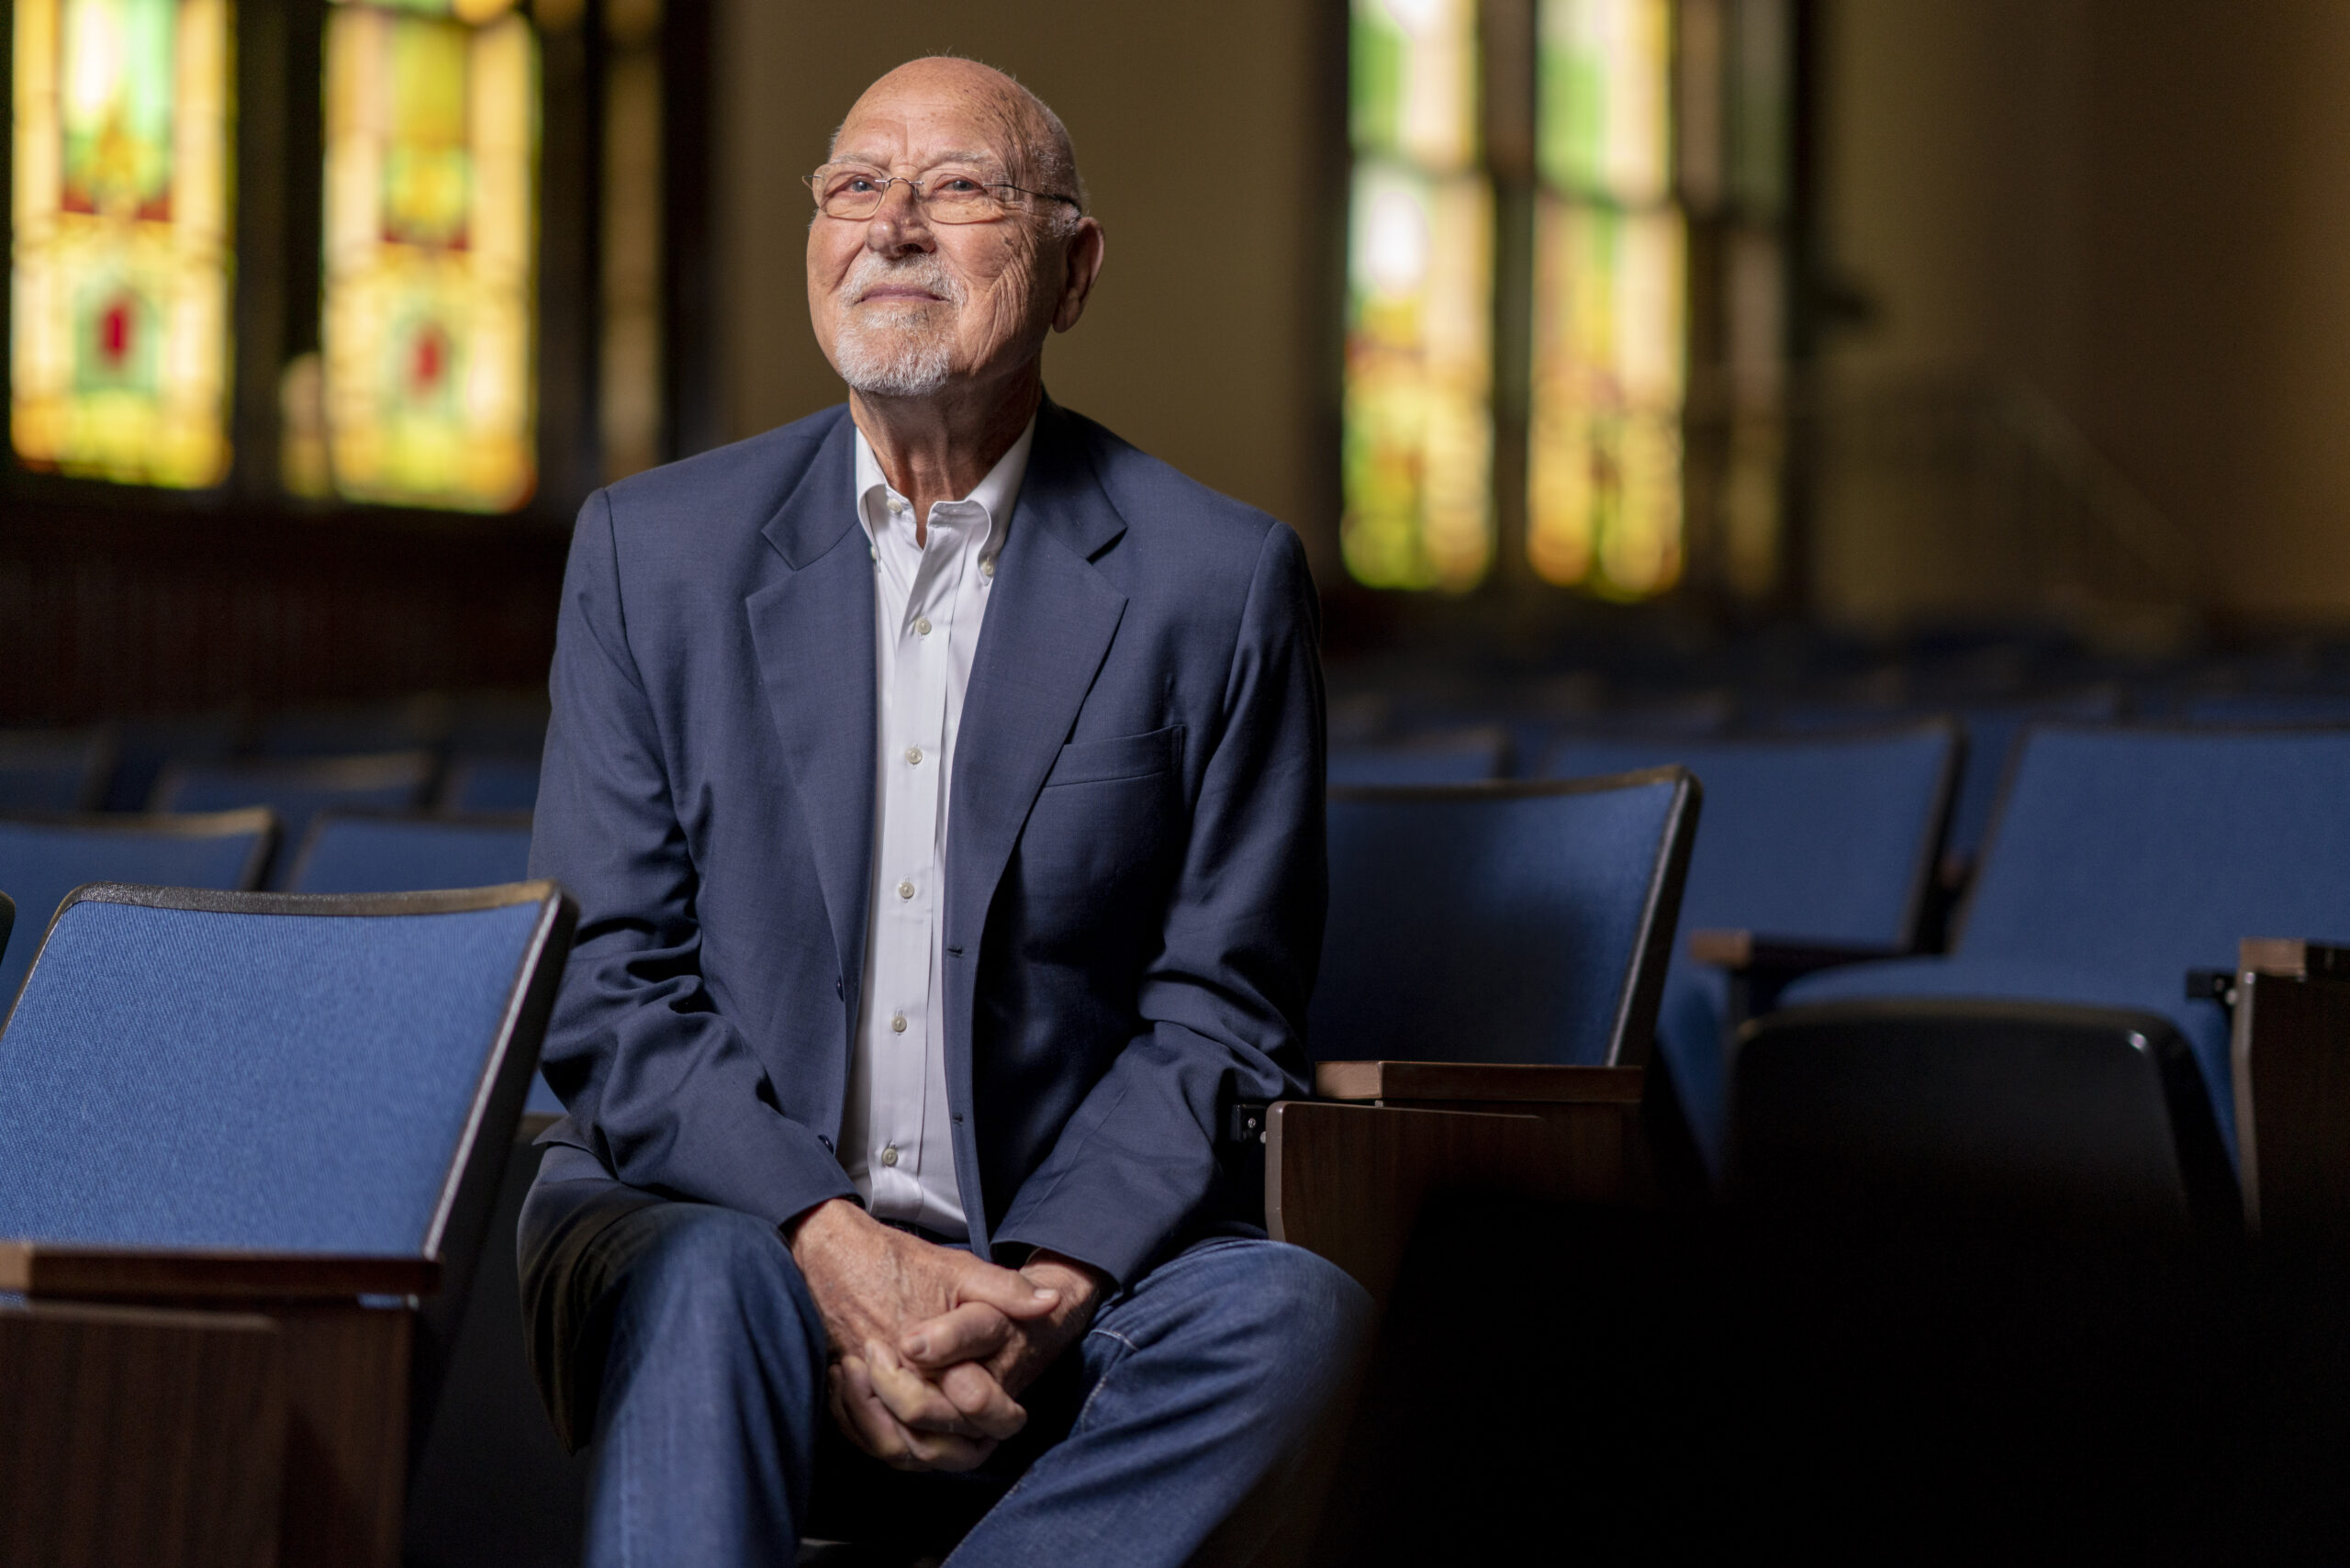 Don Finto ('50) is profiled as the most recent recipient of ACU's Dale and Rita Brown Outlive Your Life Award.